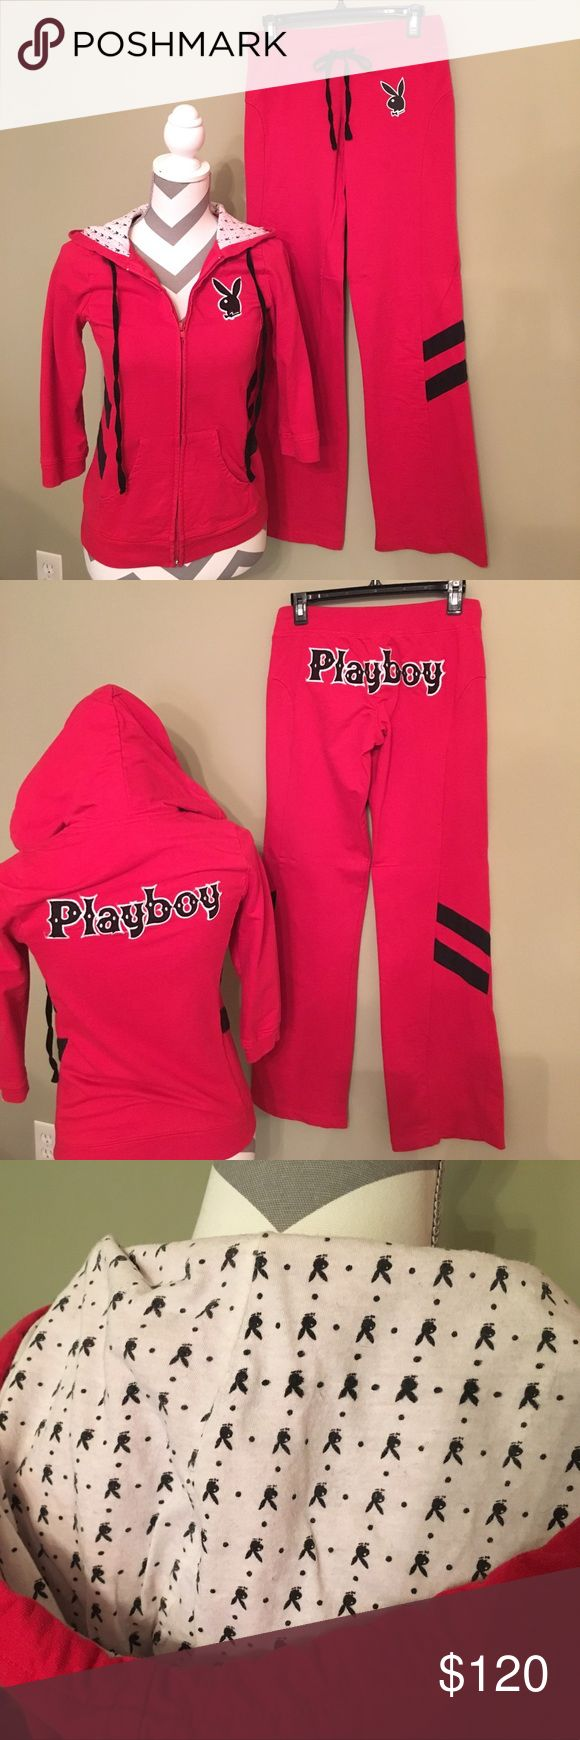 Playboy red jogging suit with black stripes. Playboy Bunny red track/jogging suit. Hoodie and pants. Worn twice! Playboy Pants Jumpsuits & Rompers